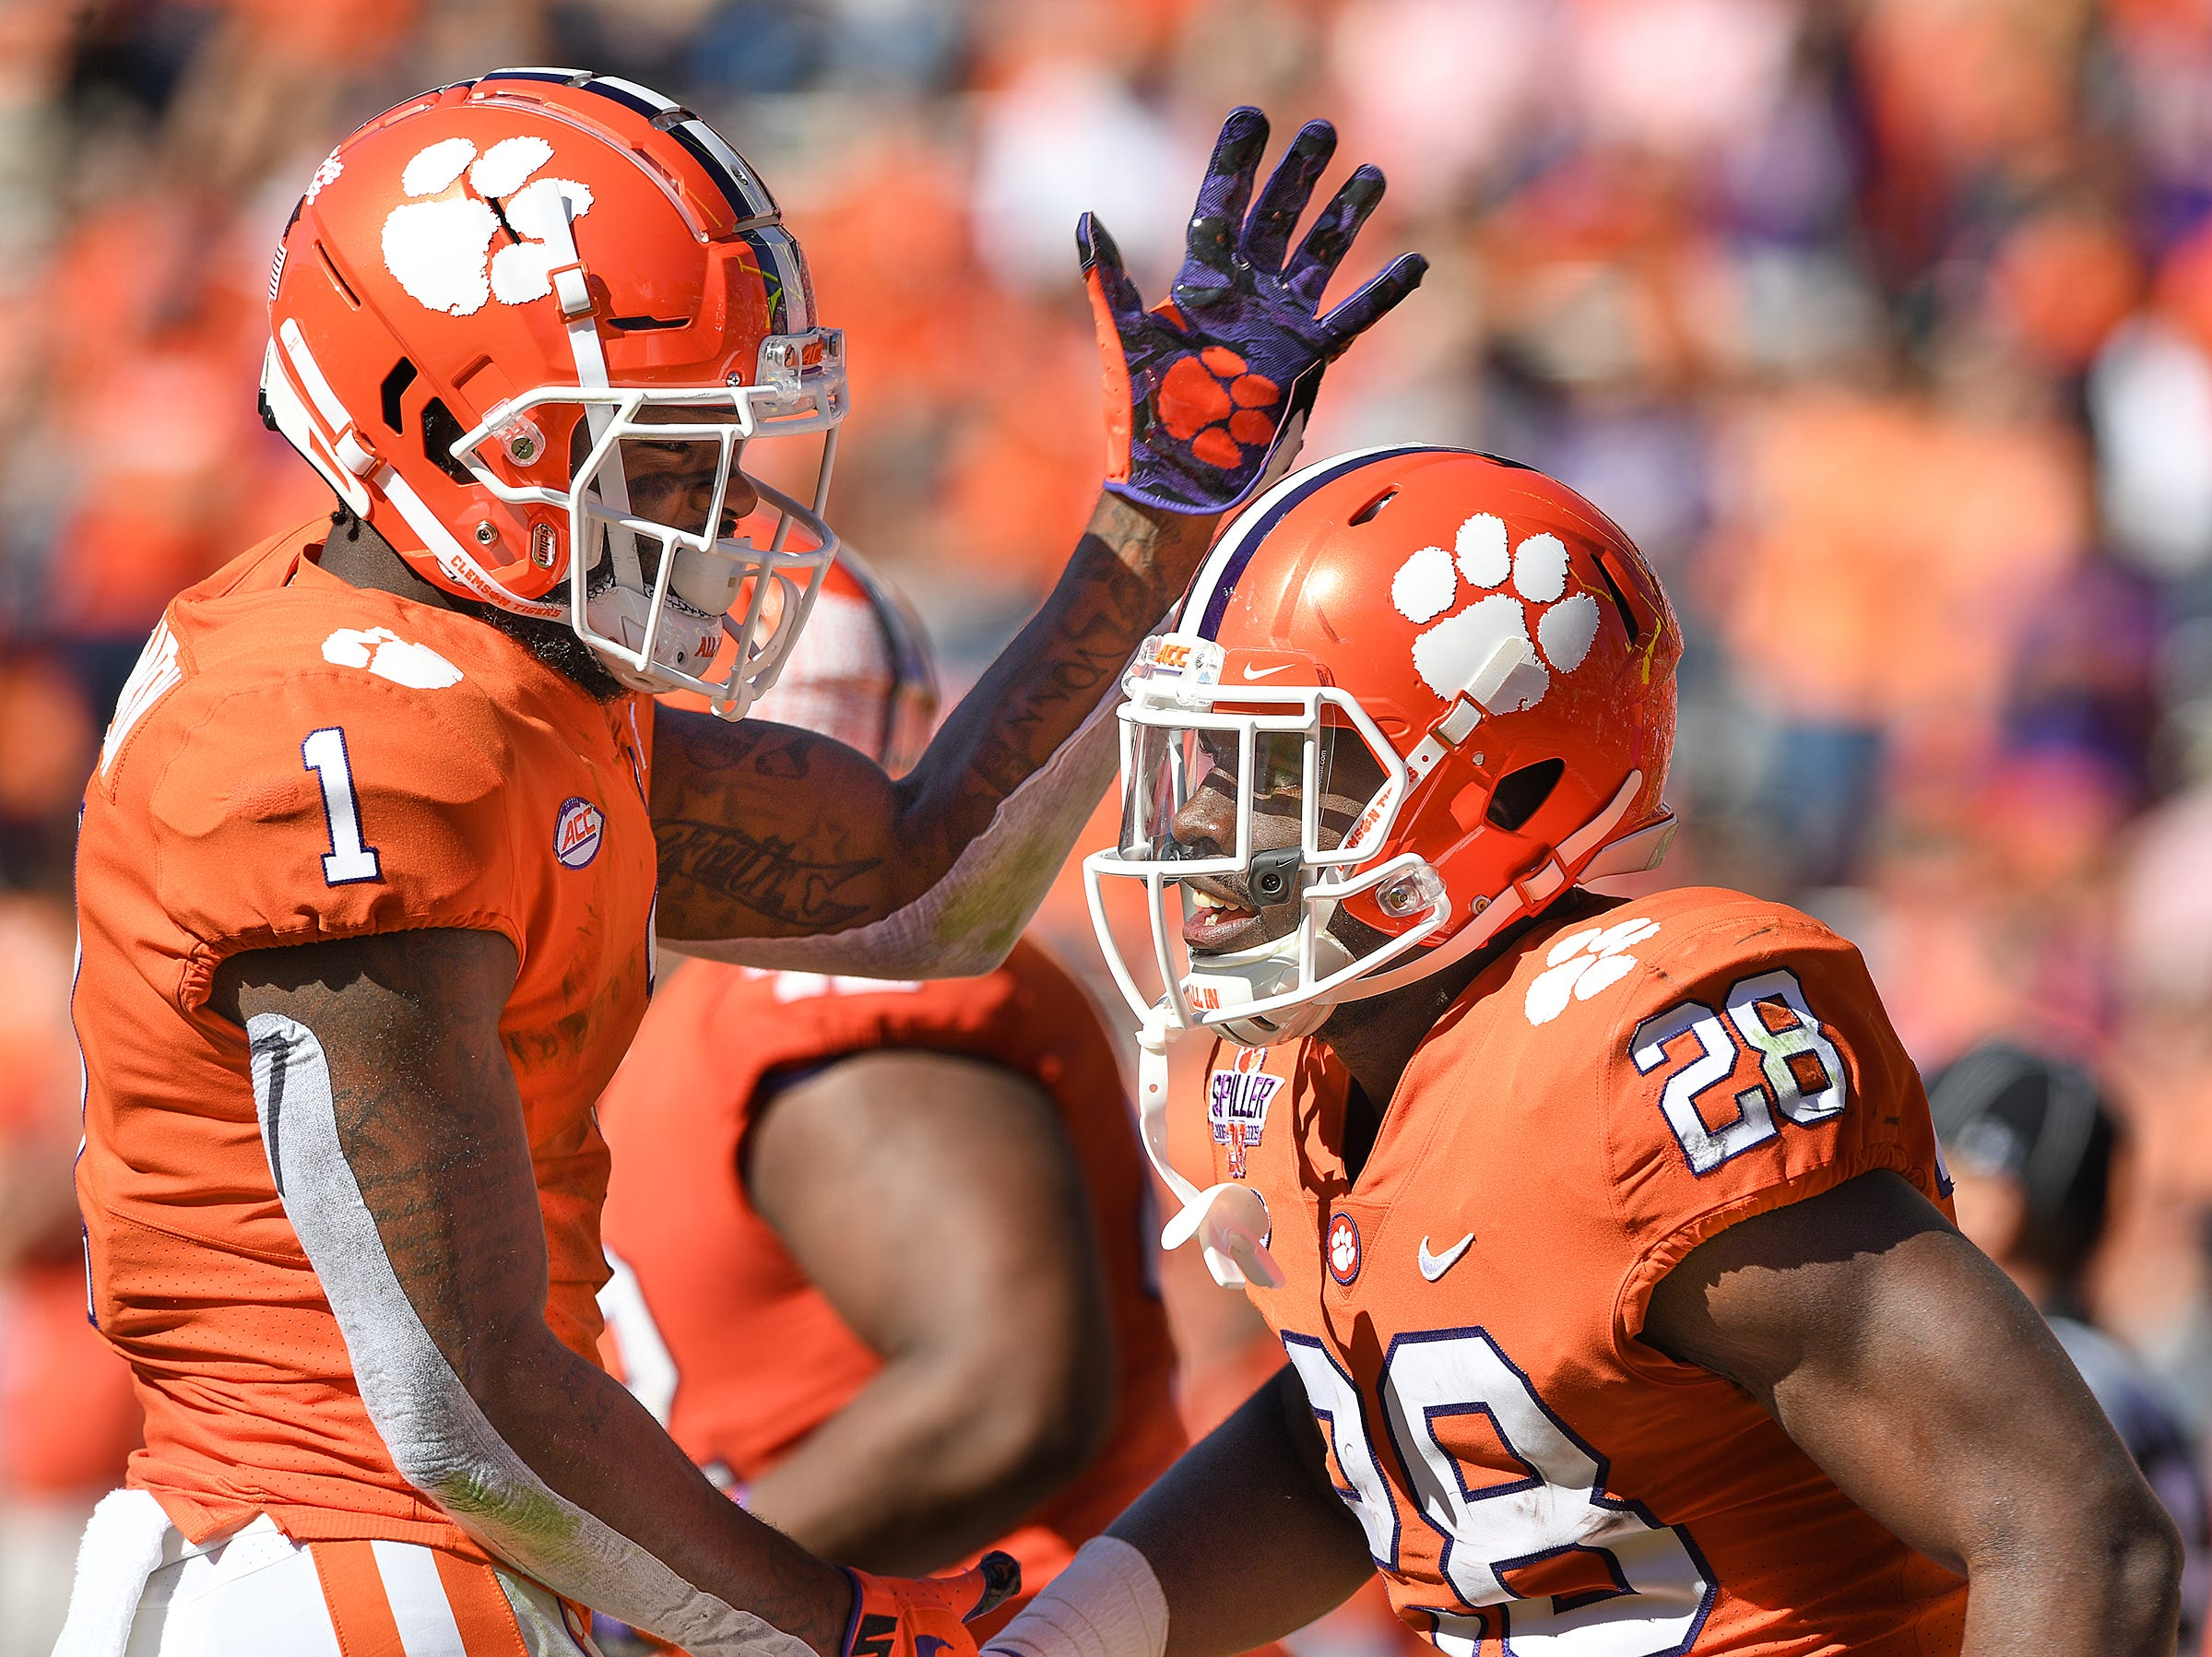 Clemson wide receiver Trevion Thompson (1) celebrates with running back Tavien Feaster (28) after Feaster scored against Louisville during the 3rd quarter Saturday, November 3, 2018 at Clemson's Memorial Stadium.